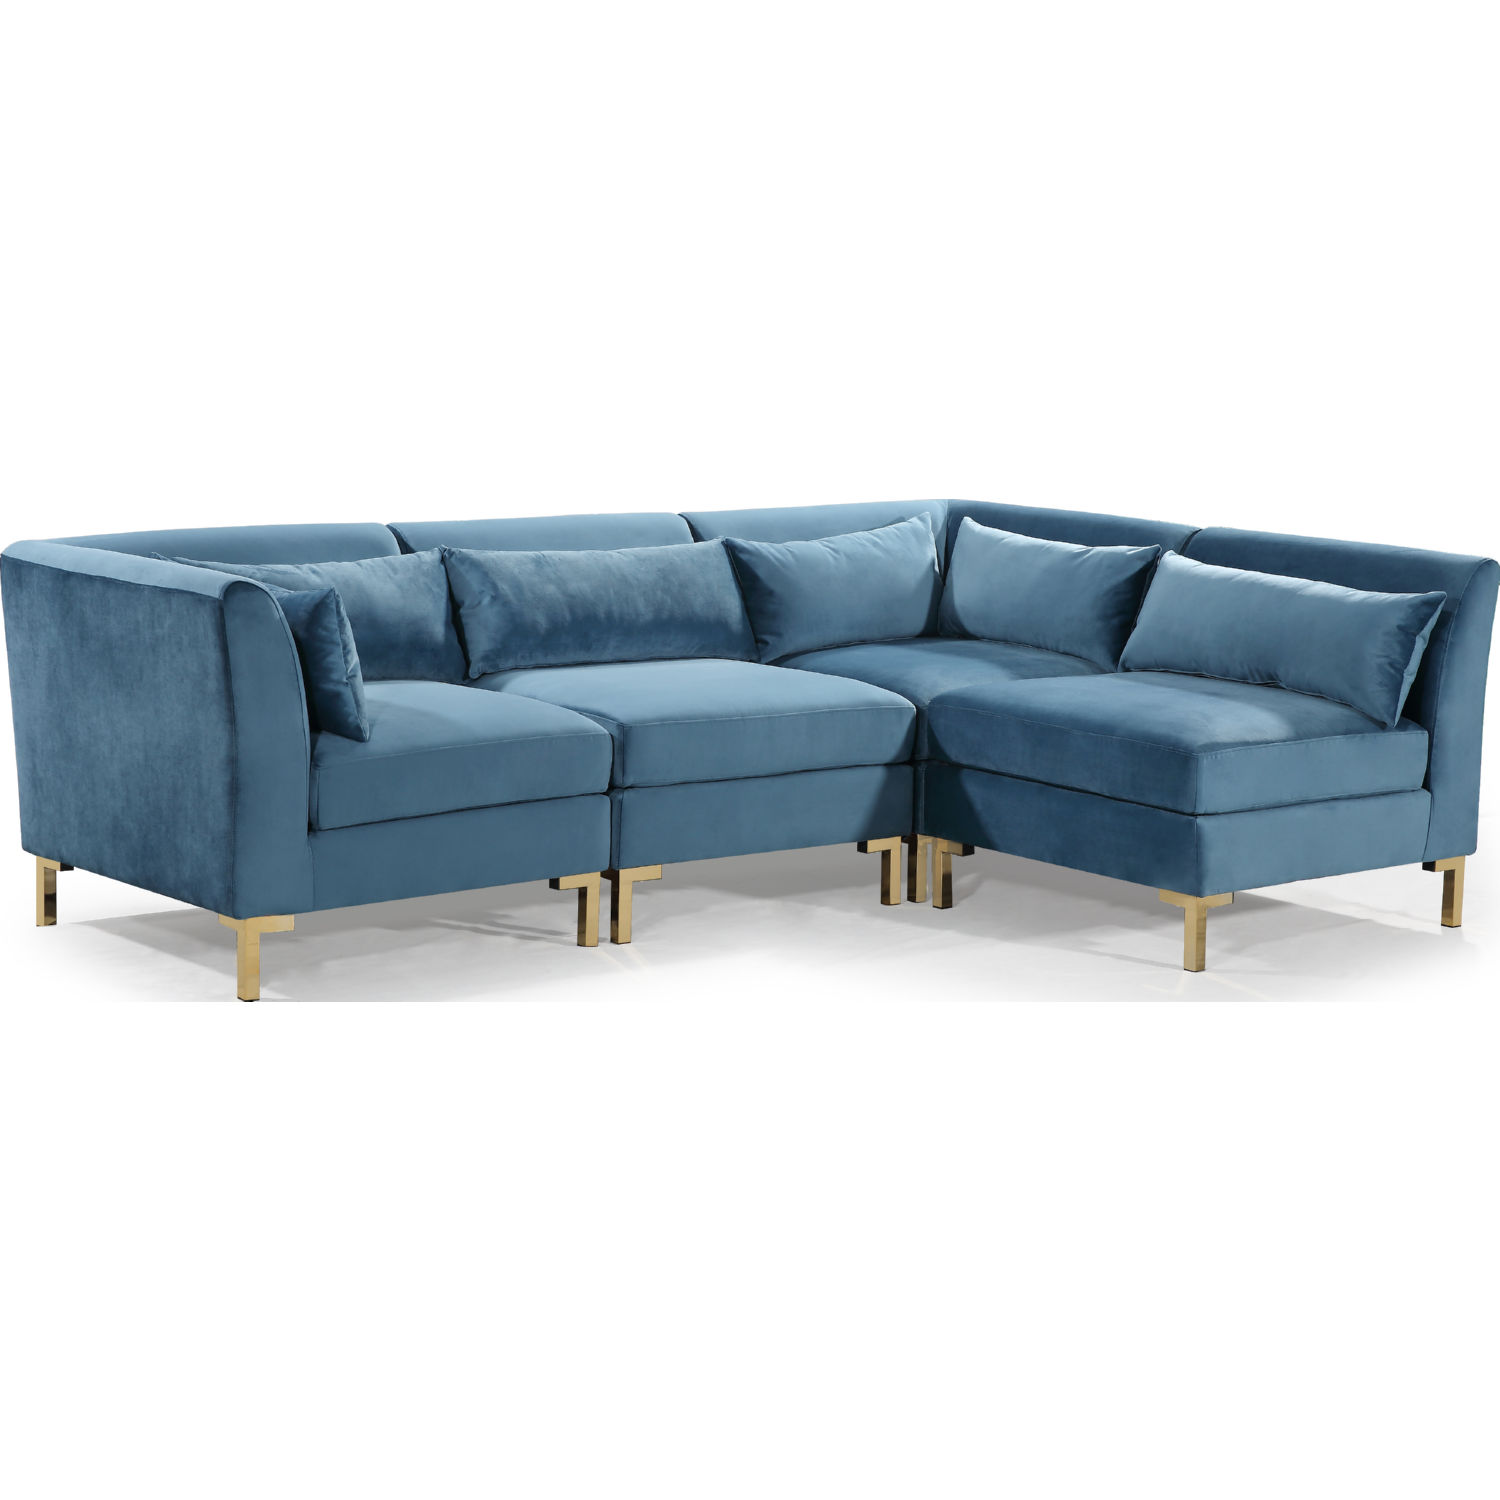 Surprising Girardi Modular Sectional Sofa In Teal Velvet On Gold Metal Legs By Chic Home Pabps2019 Chair Design Images Pabps2019Com